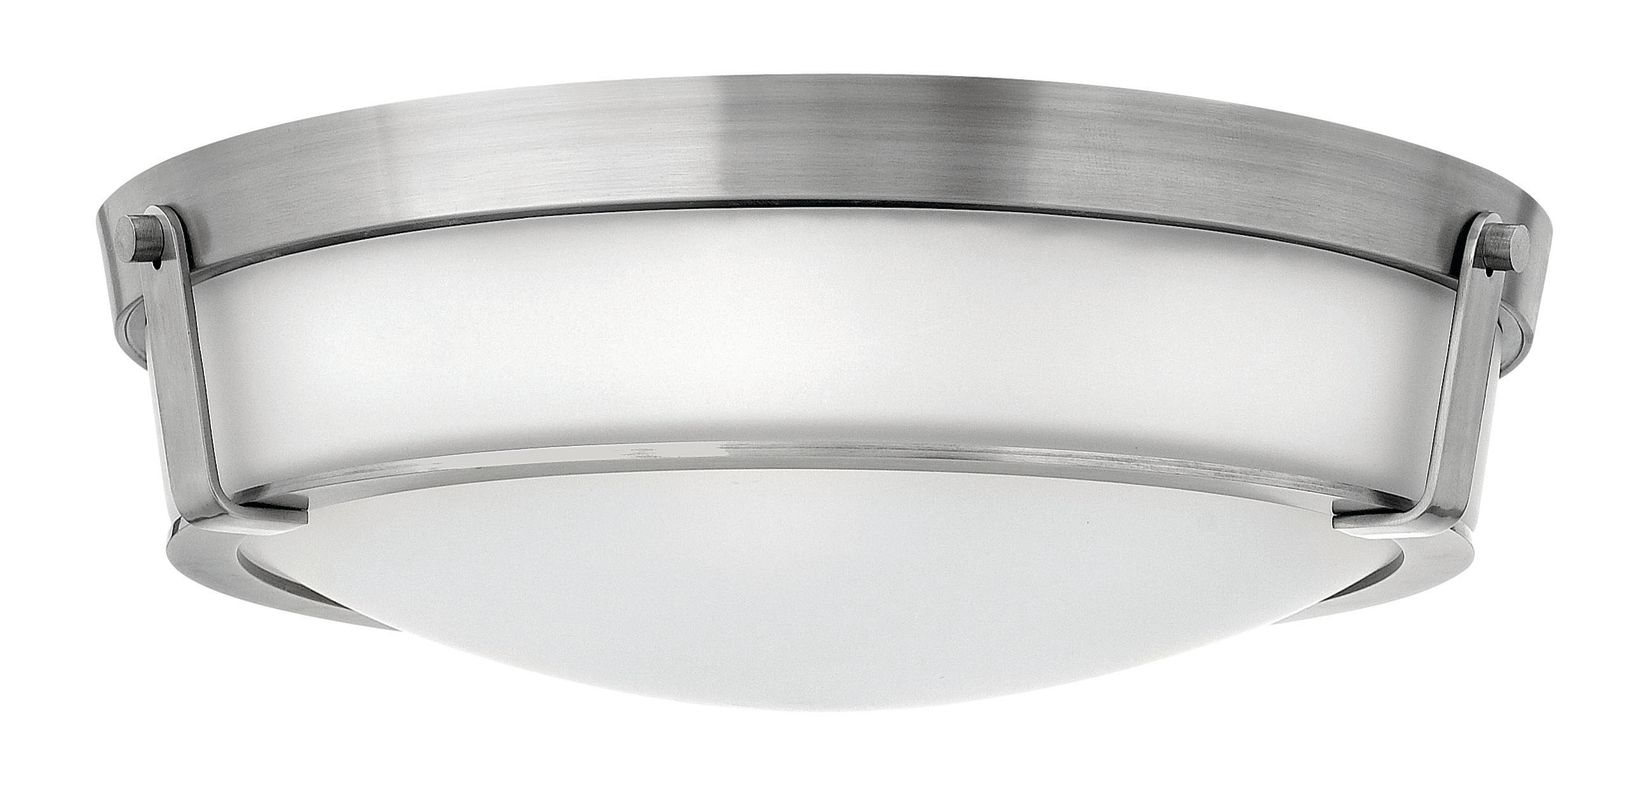 Hinkley Lighting 3226-GU24 4 Light Title 24 Fluorescent Flush Mount Sale $539.00 ITEM#: 2635214 MODEL# :3226AN-GU24 UPC#: 640665322620 :